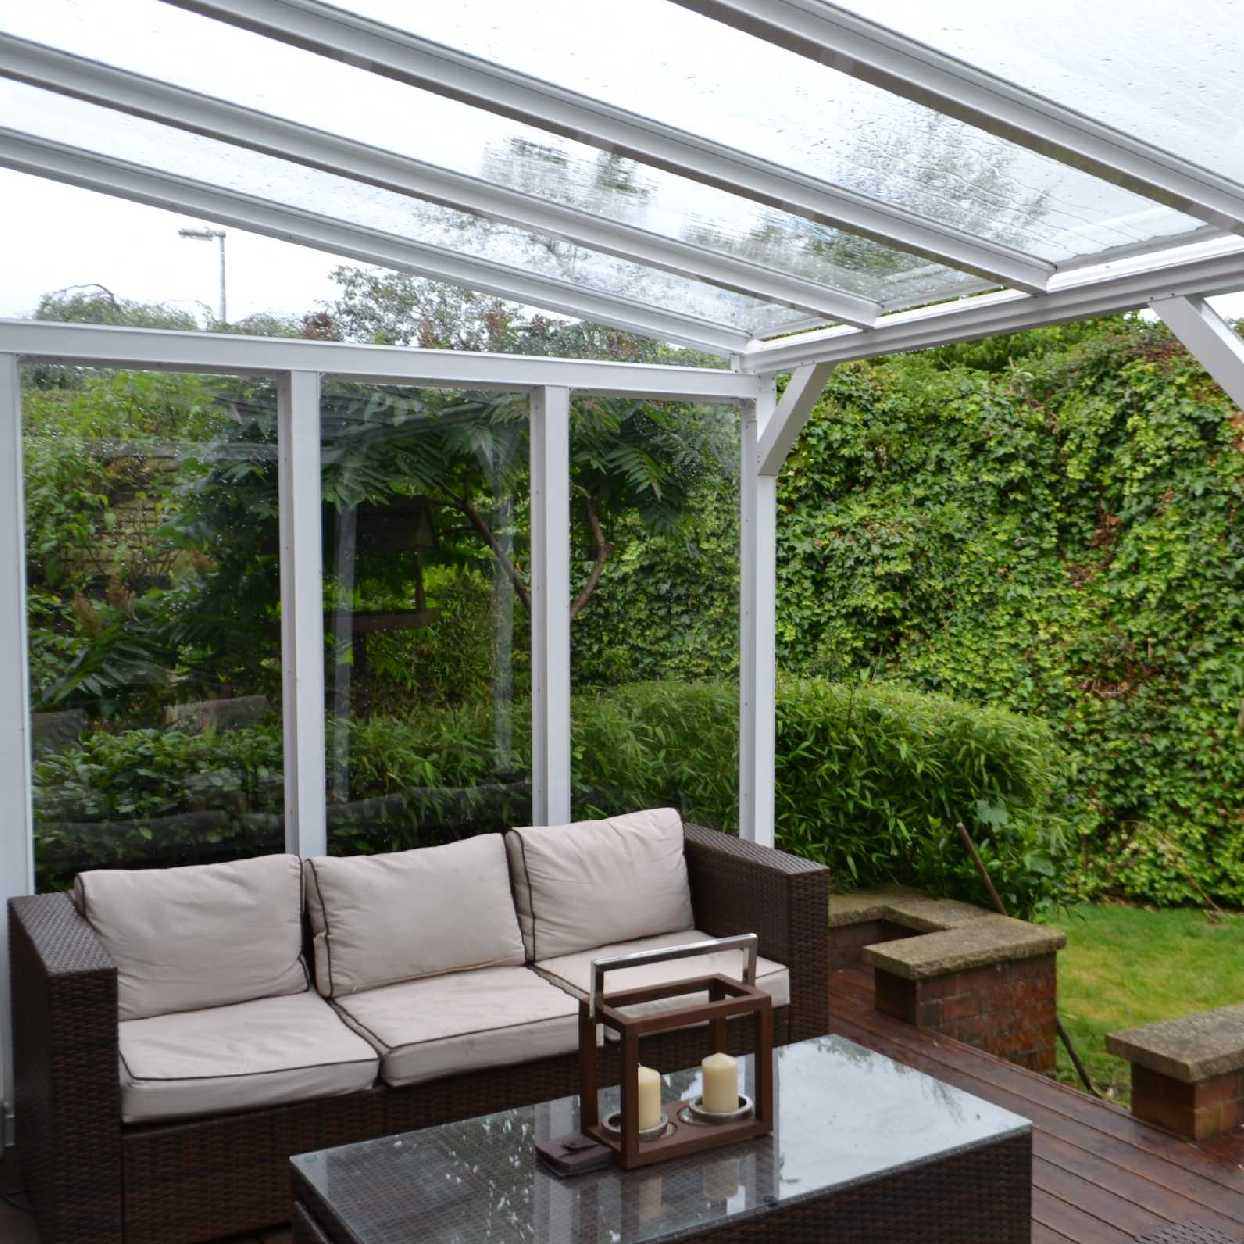 Omega Smart White Lean-To Canopy UNGLAZED for 6mm Glazing - 3.5m (W) x 1.5m (P), (3) Supporting Posts